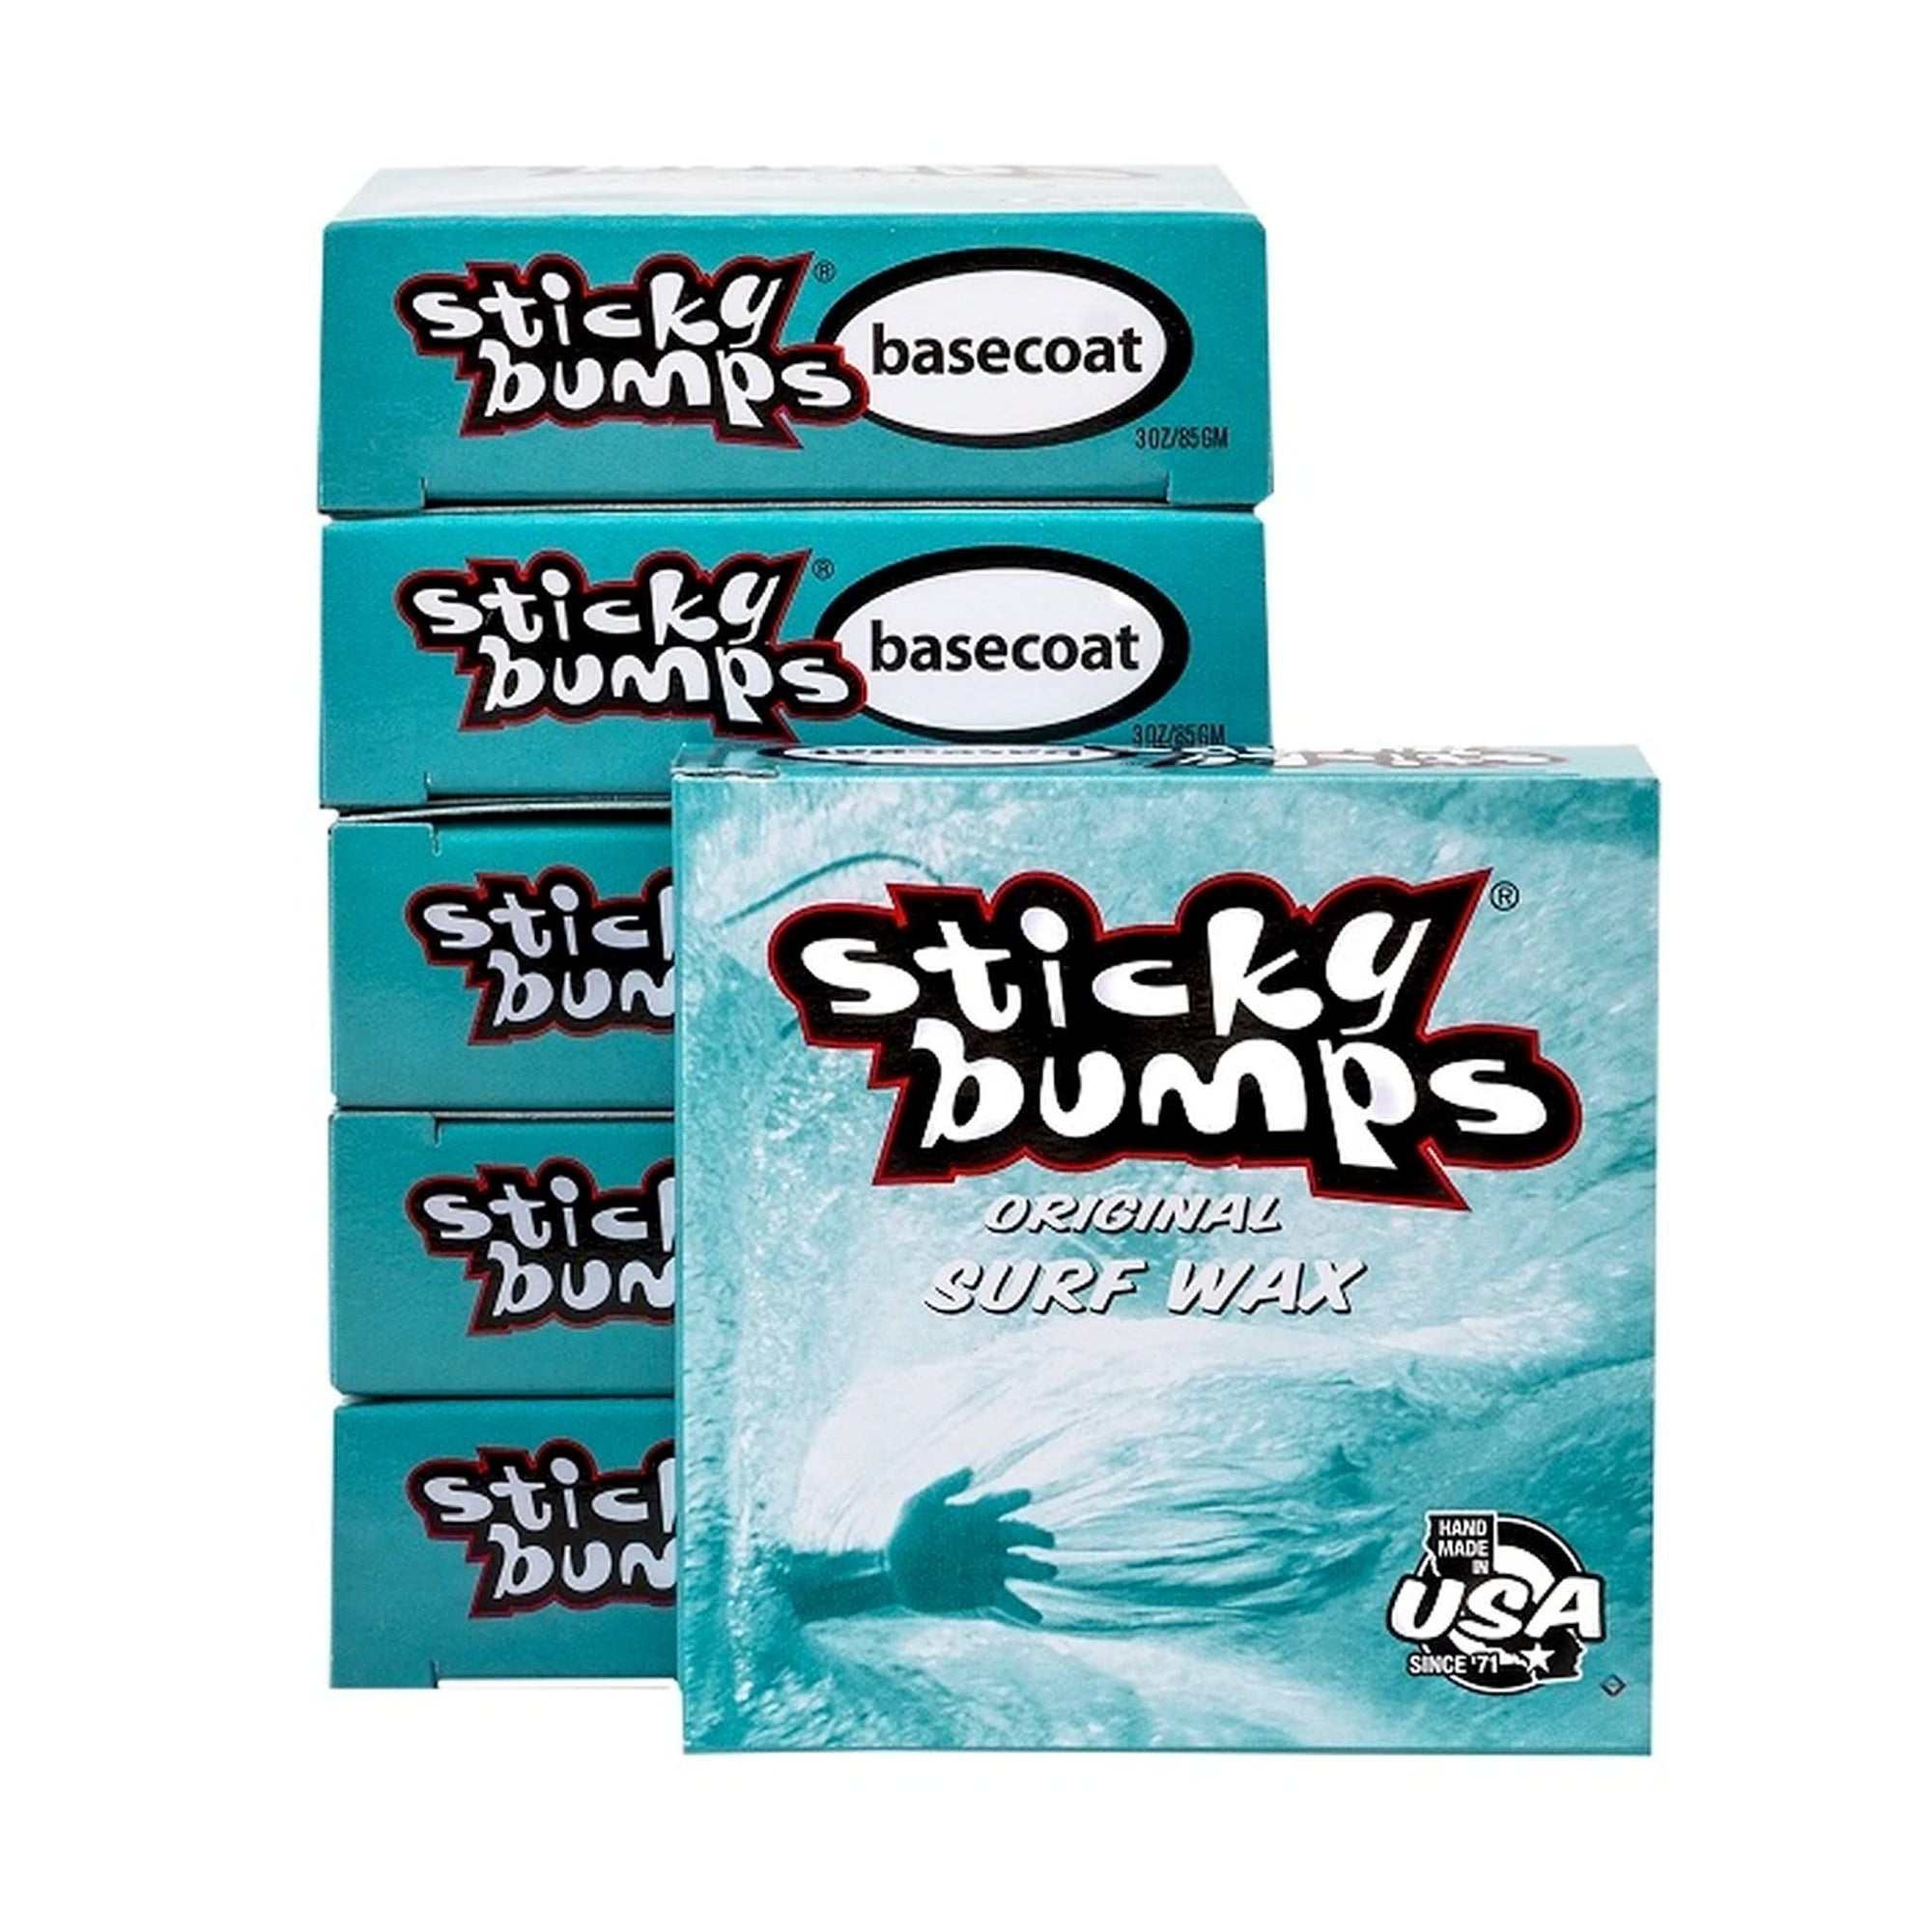 Sticky Bumps Original Surf Wax - Base